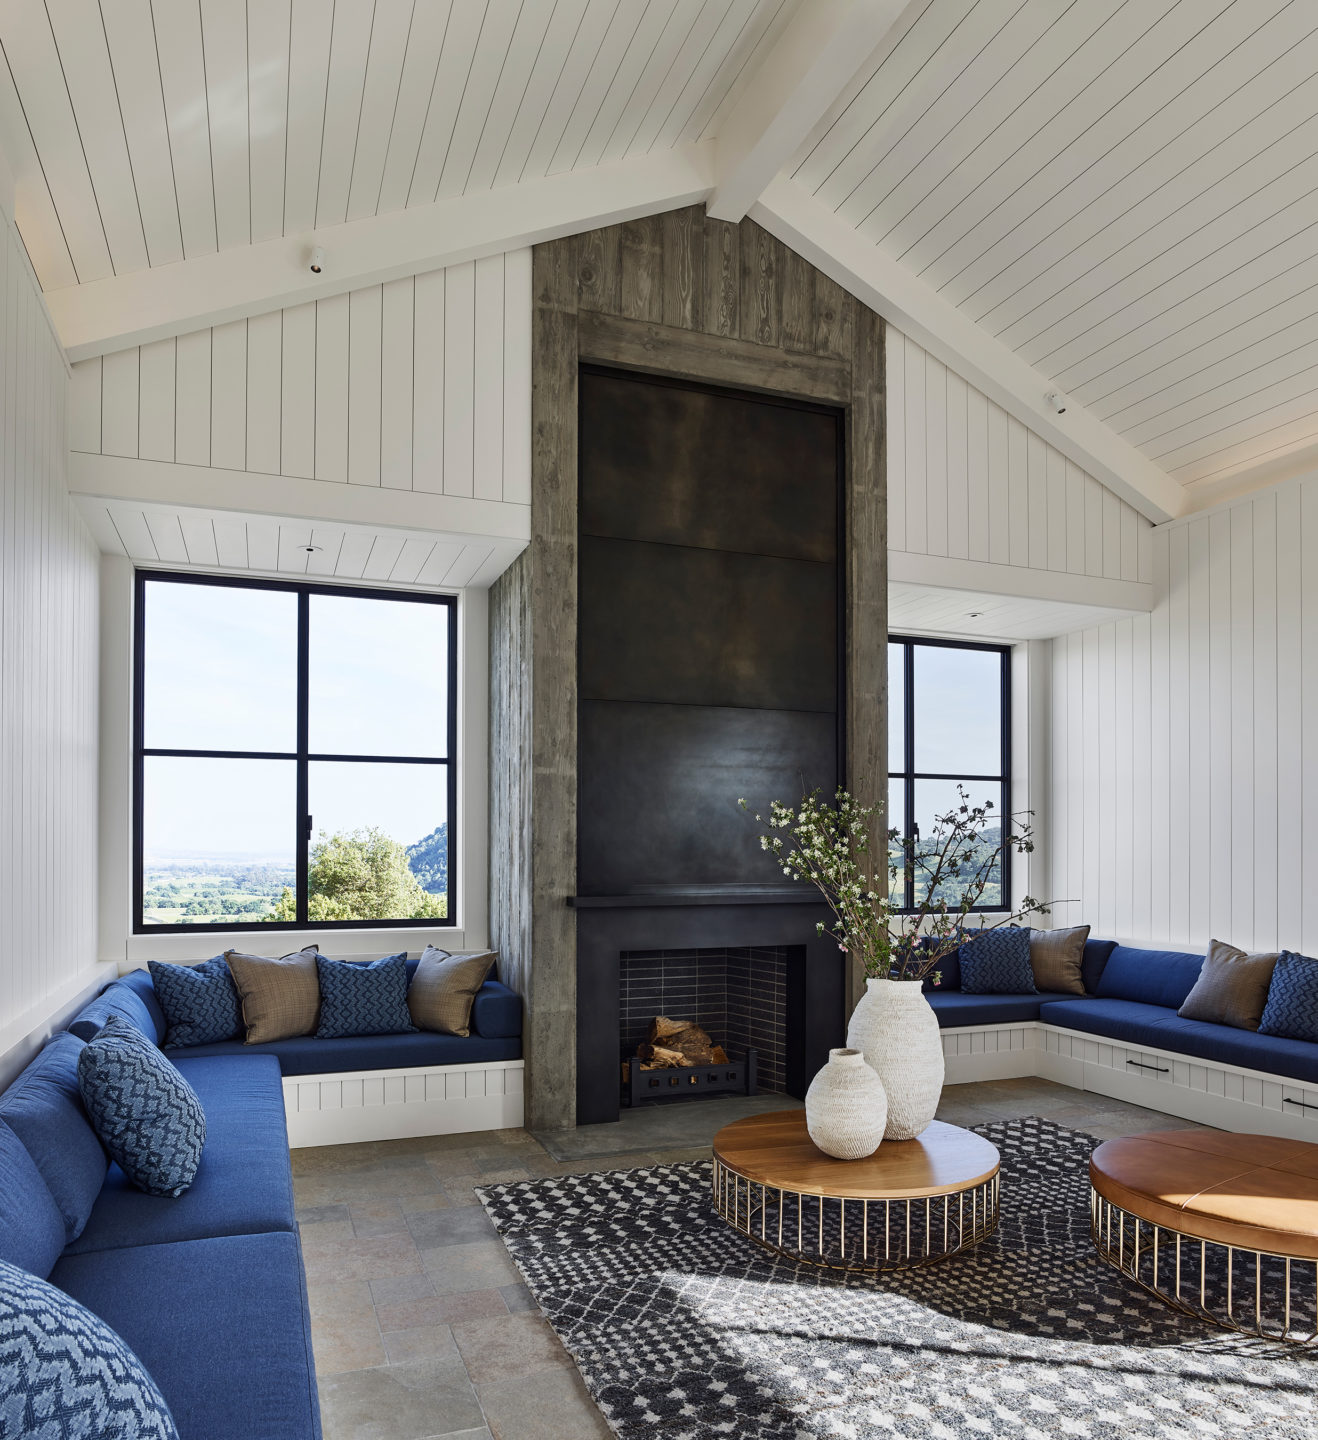 Jennifer_robins_interiors_projects_napa_valley_10_living_room_LR_fireplace_seating_interior_int